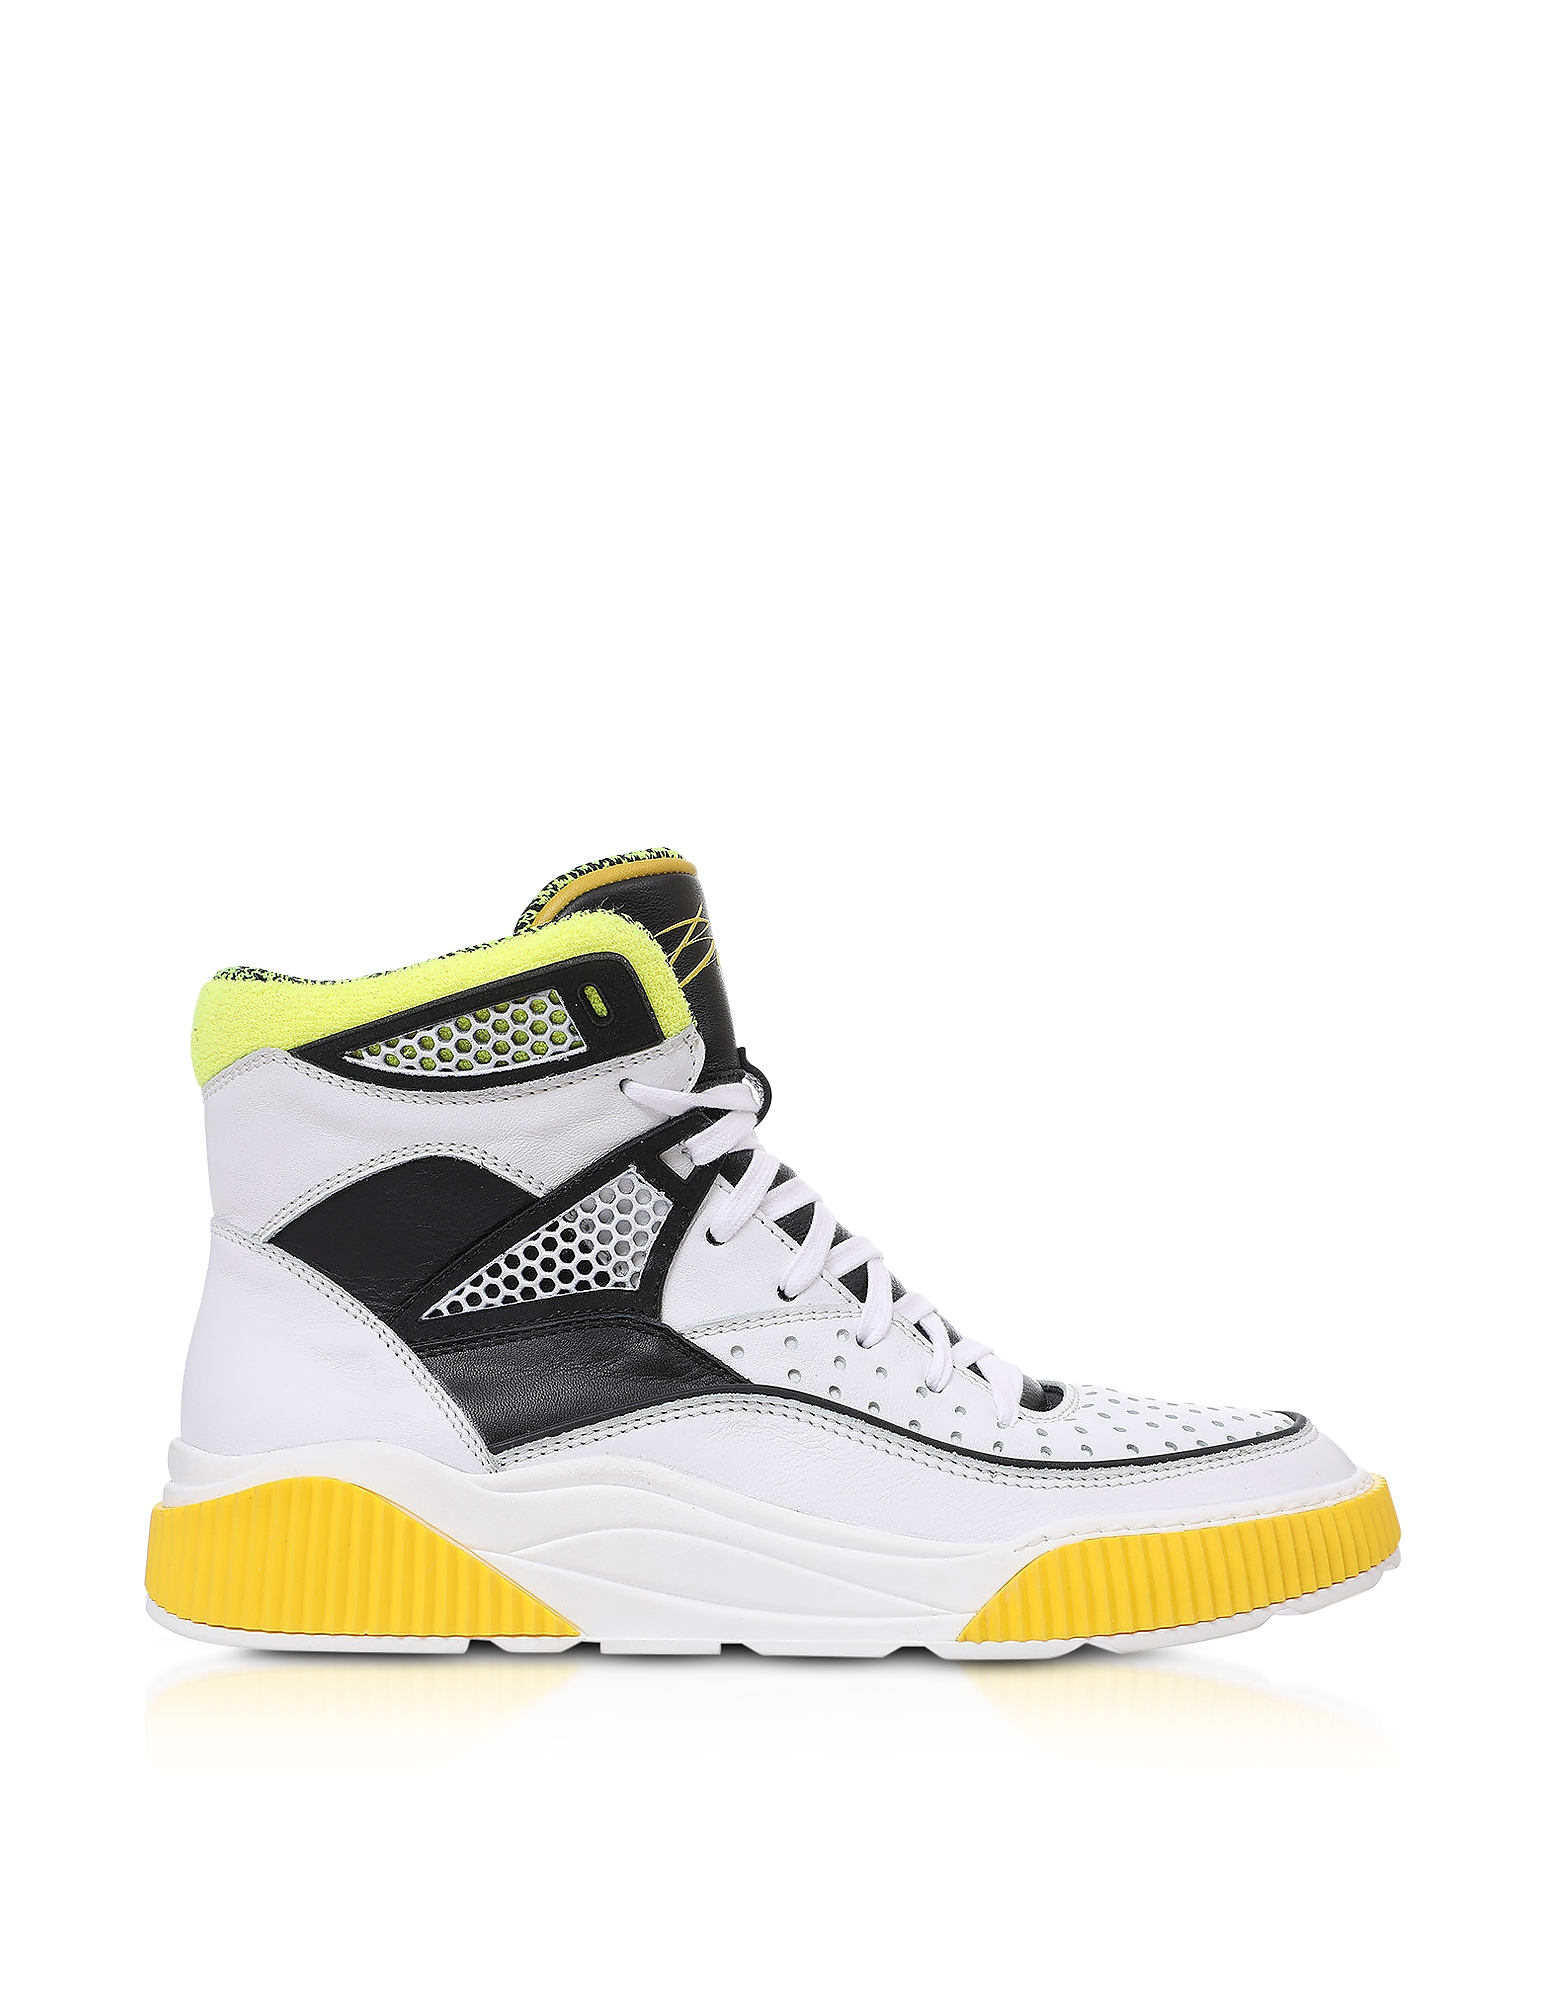 White and Yellow Kery-Leather High Top Sneakers